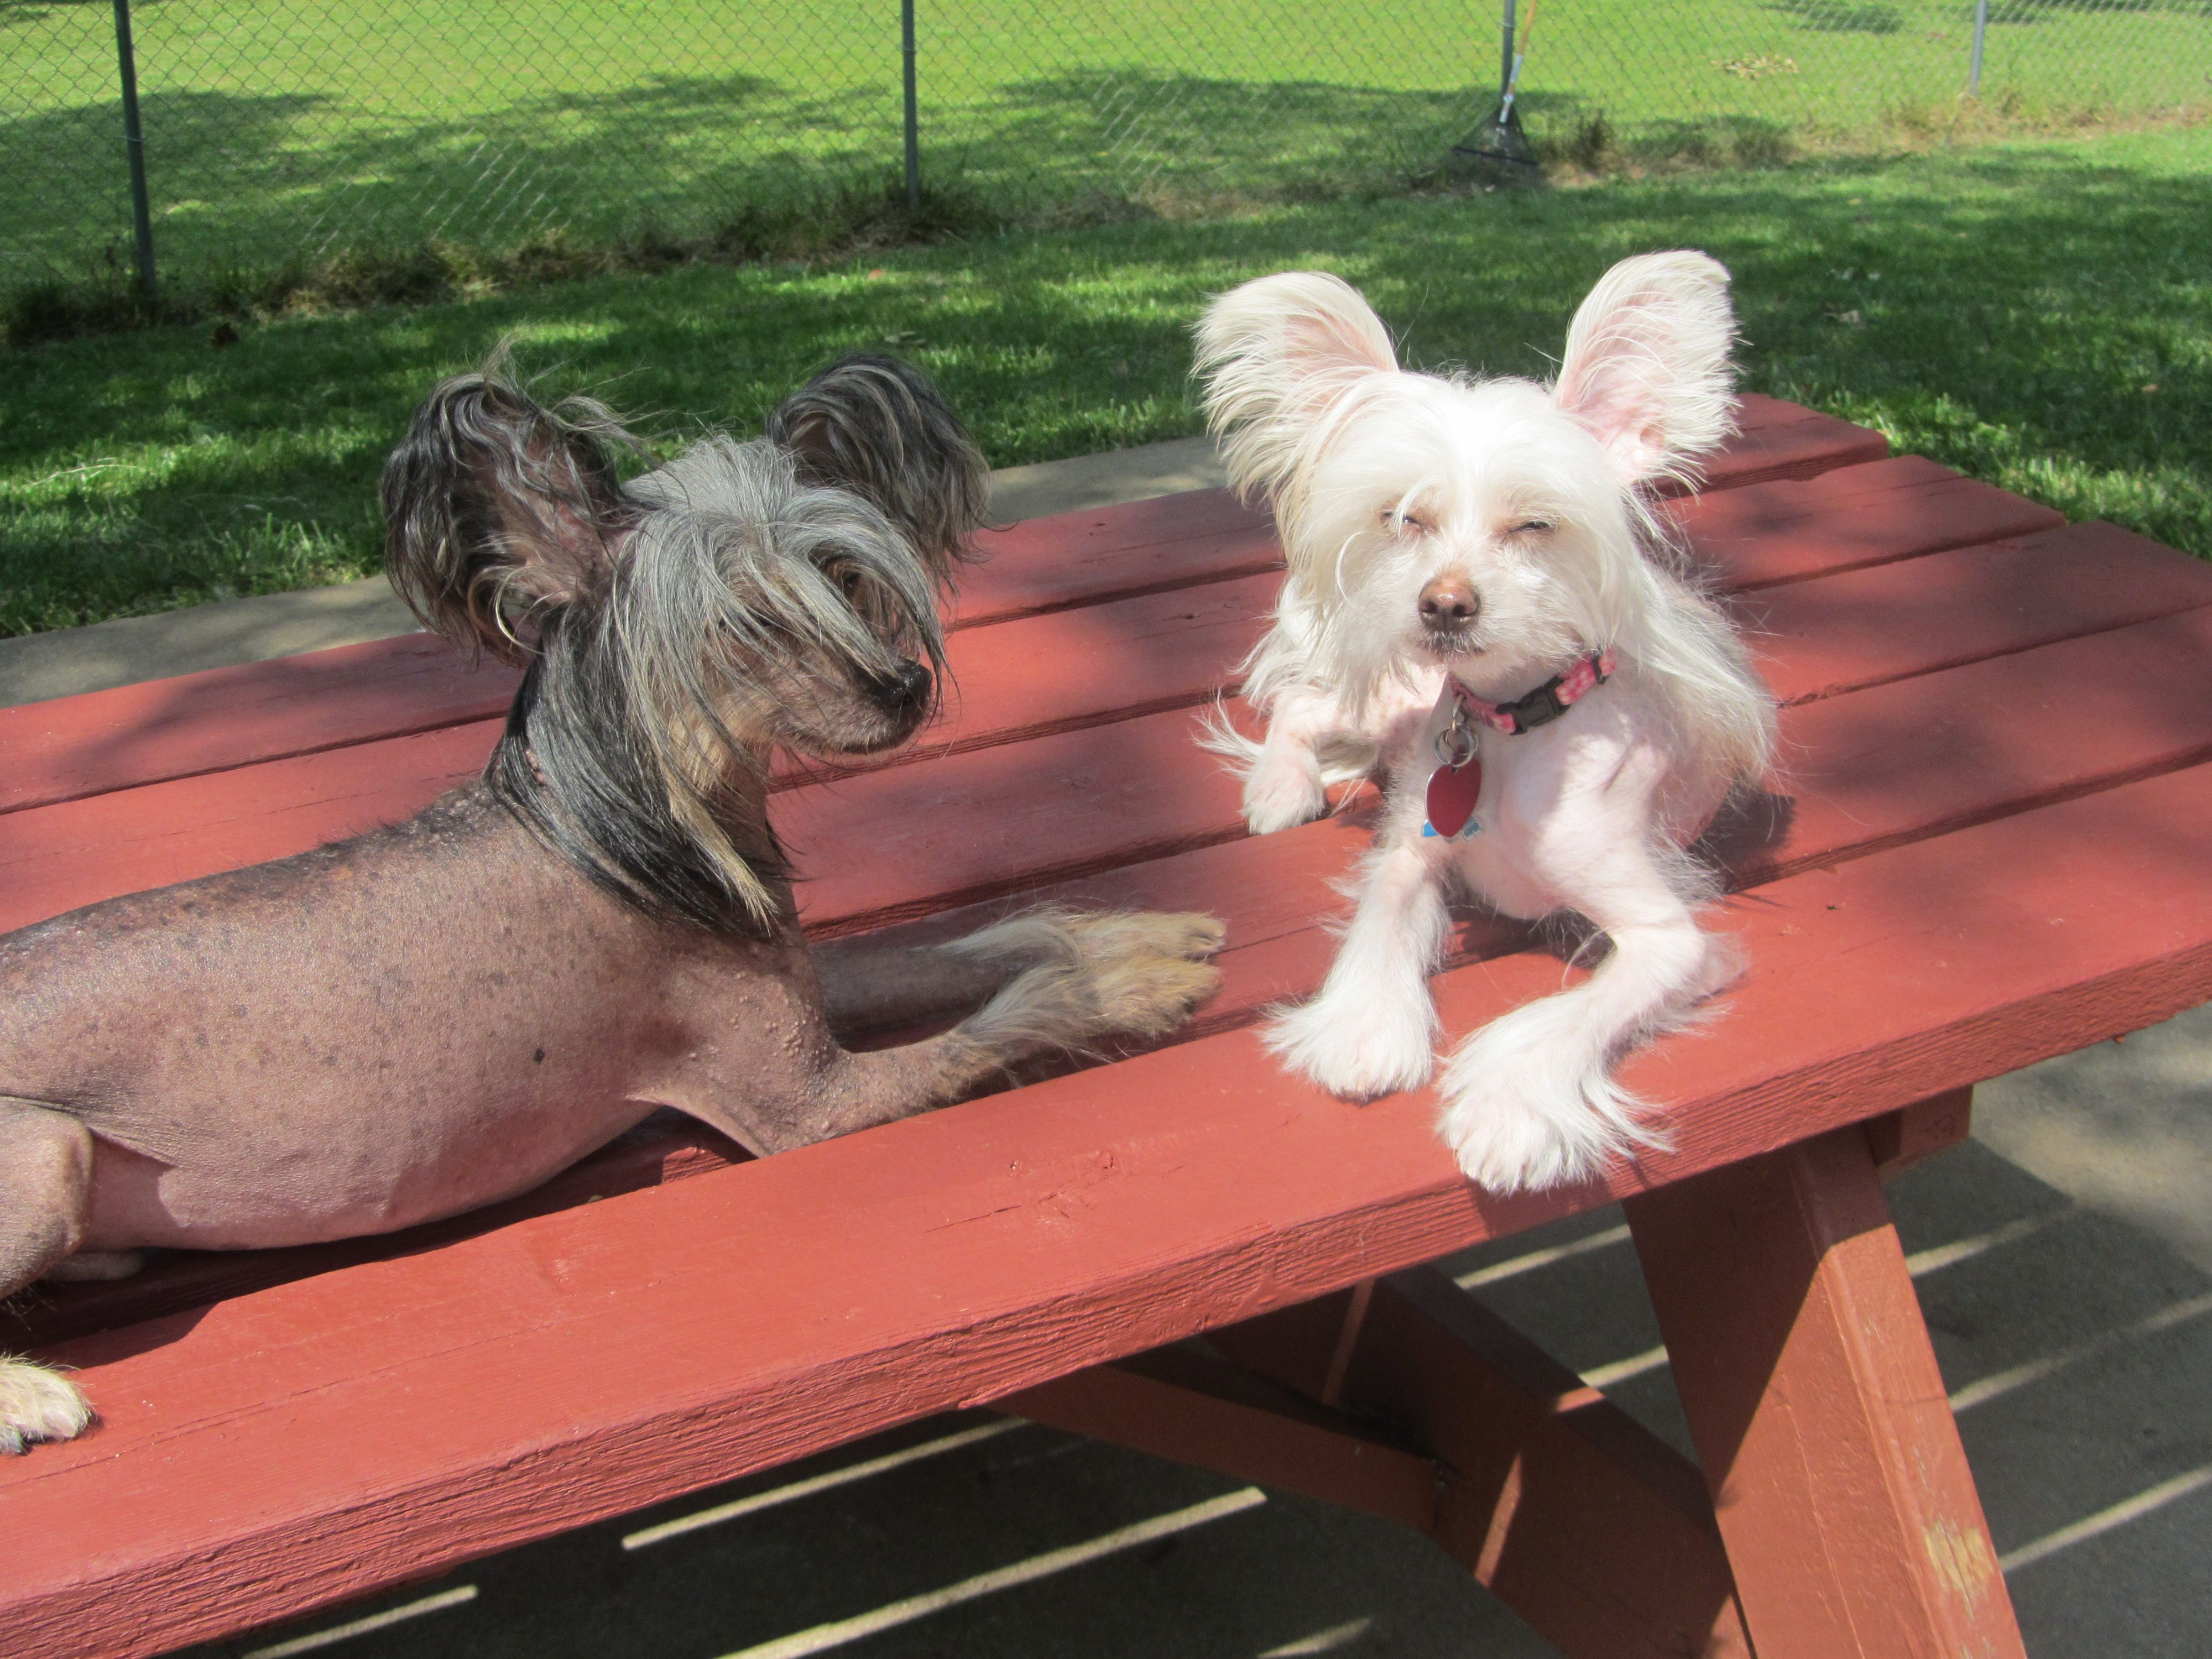 Pin By Vanessa Olivet On Chinese Crested Love For You Nugget Chinese Crested Dog Silly Animal Pictures Chinese Crested